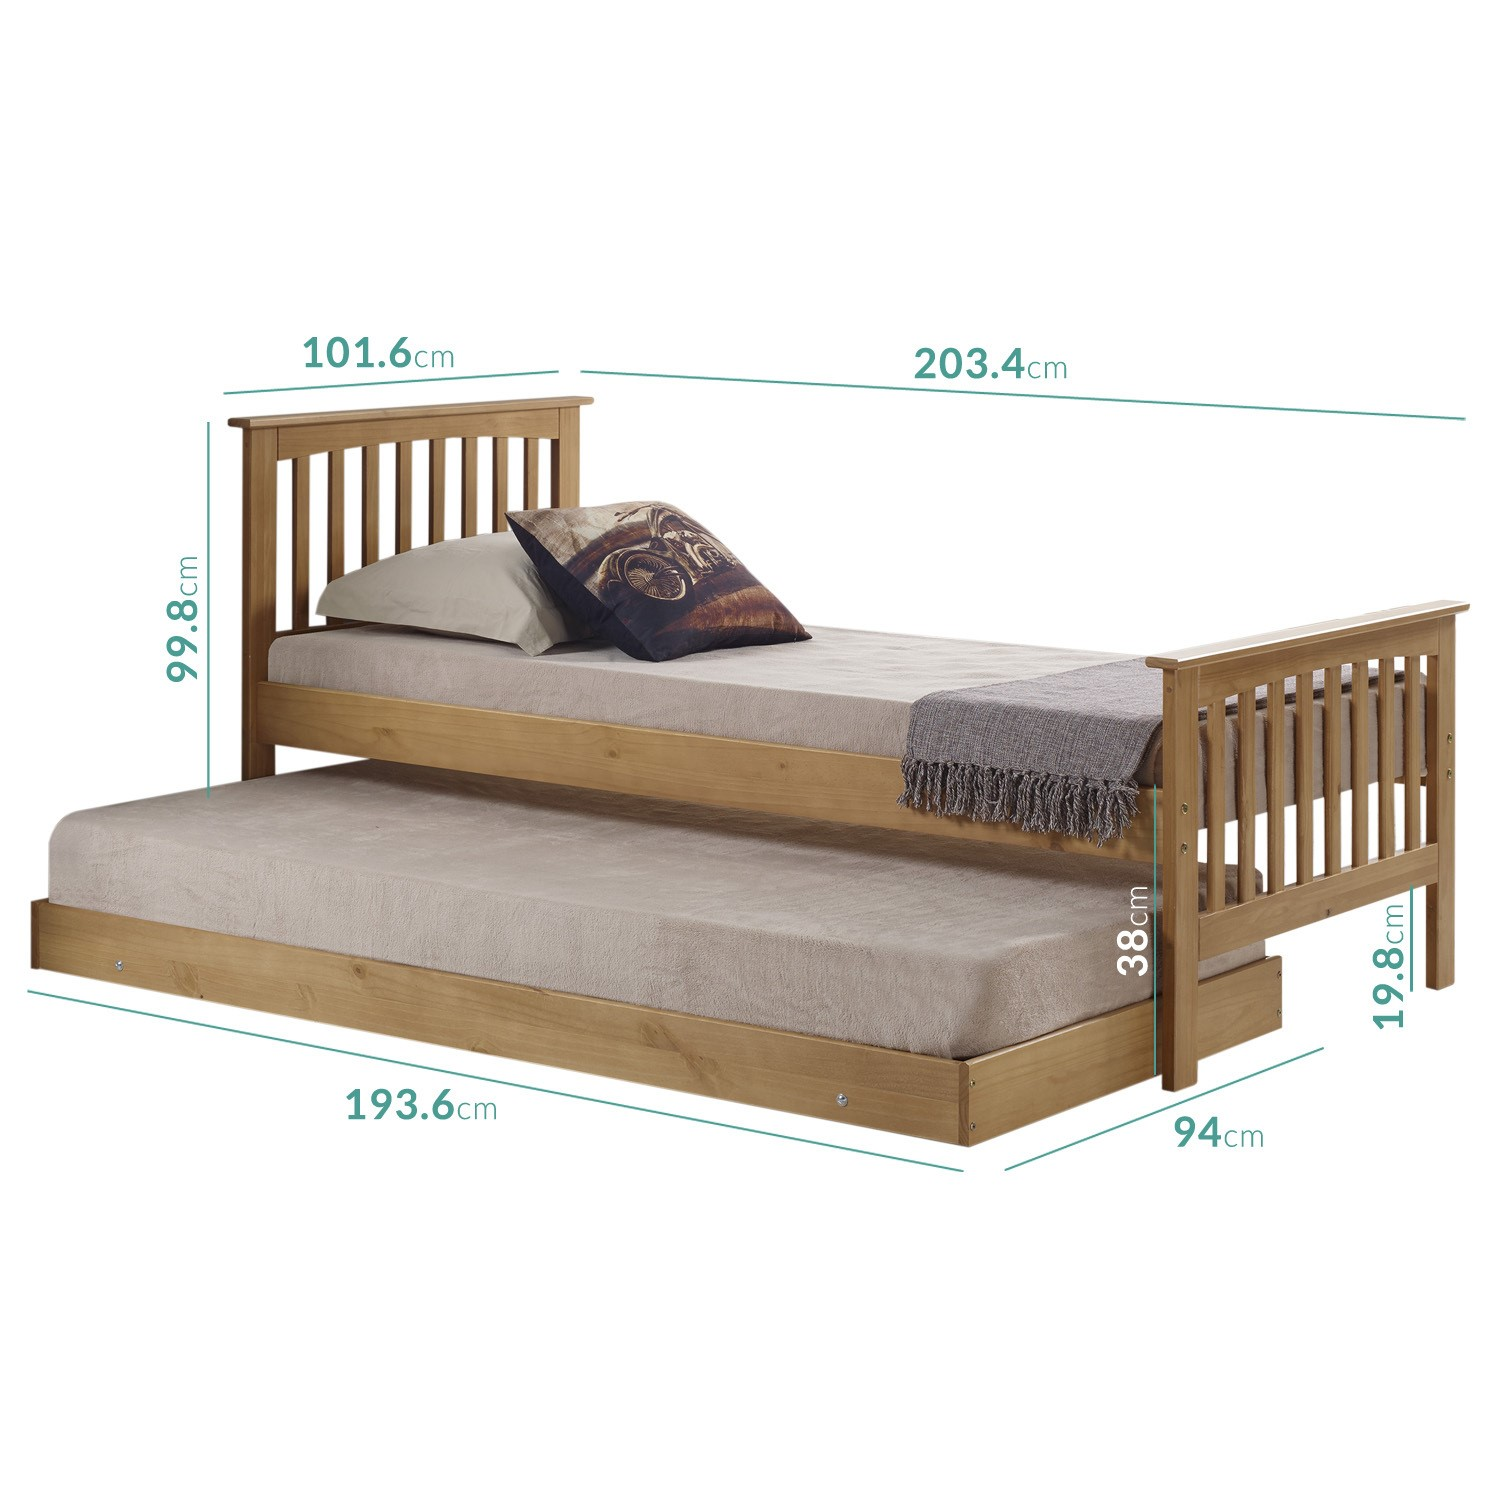 Oxford Single Guest Bed in Pine   Trundle Bed Included   Buy It Direct